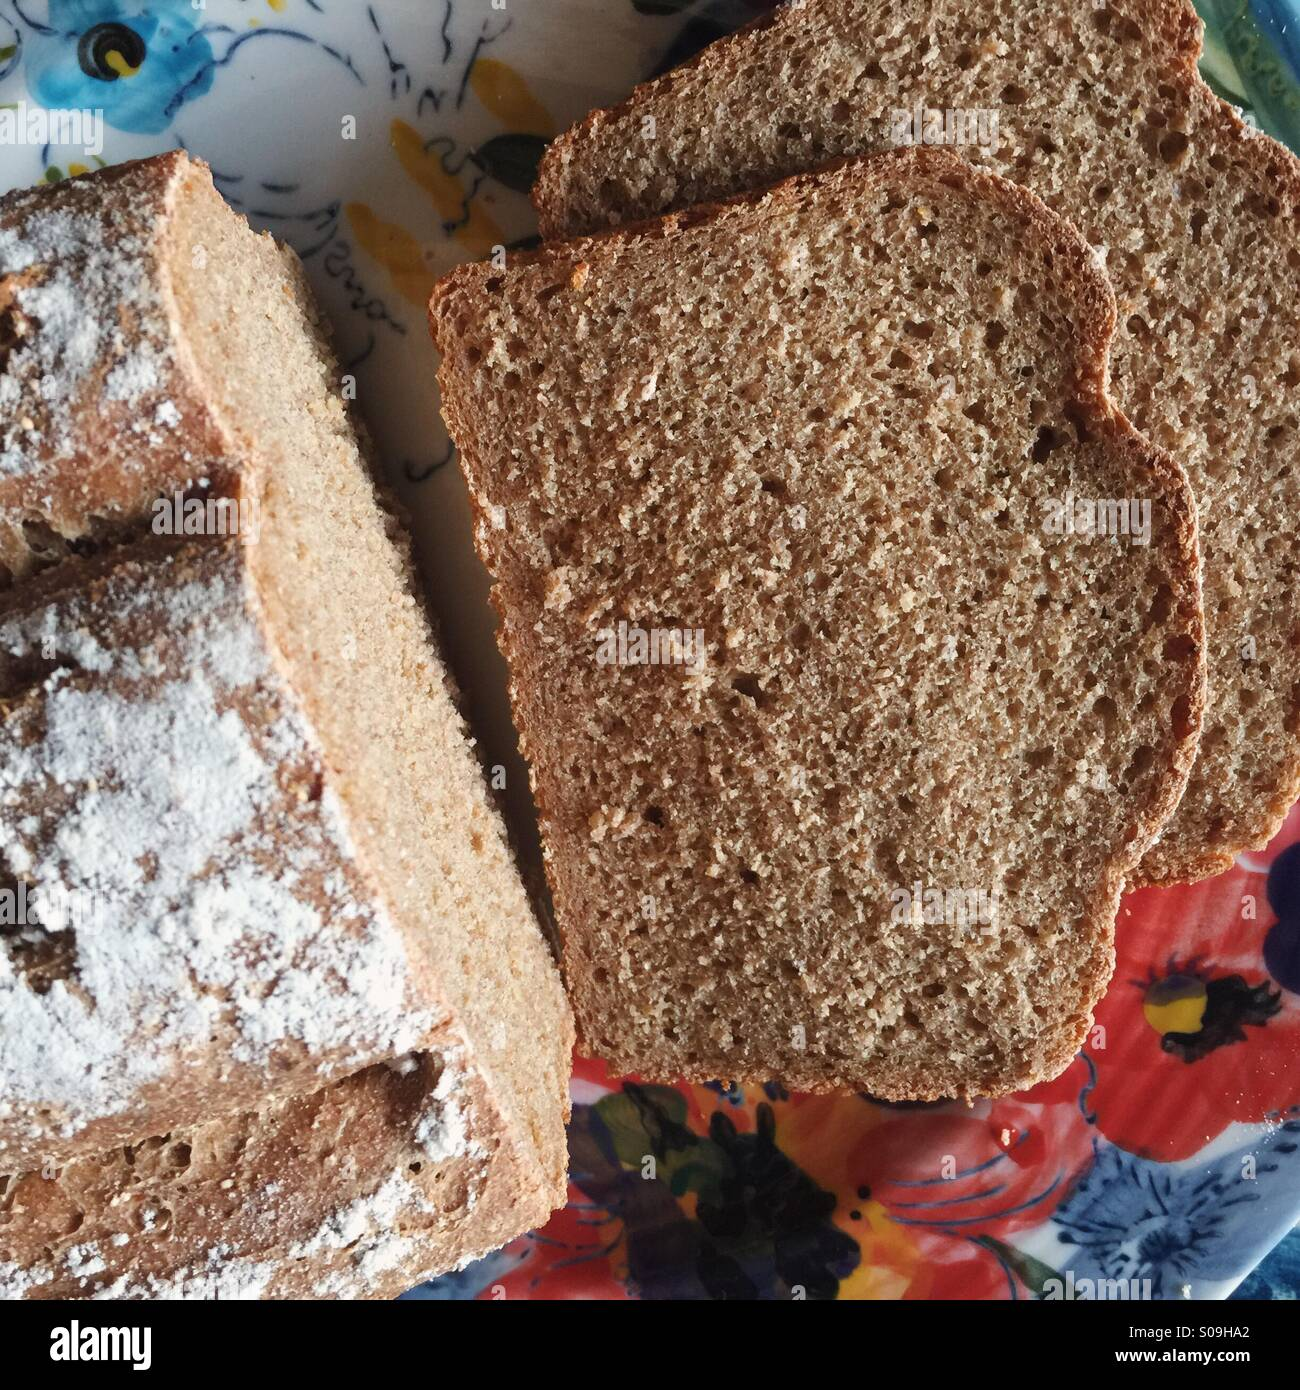 Home made rye bread - Stock Image